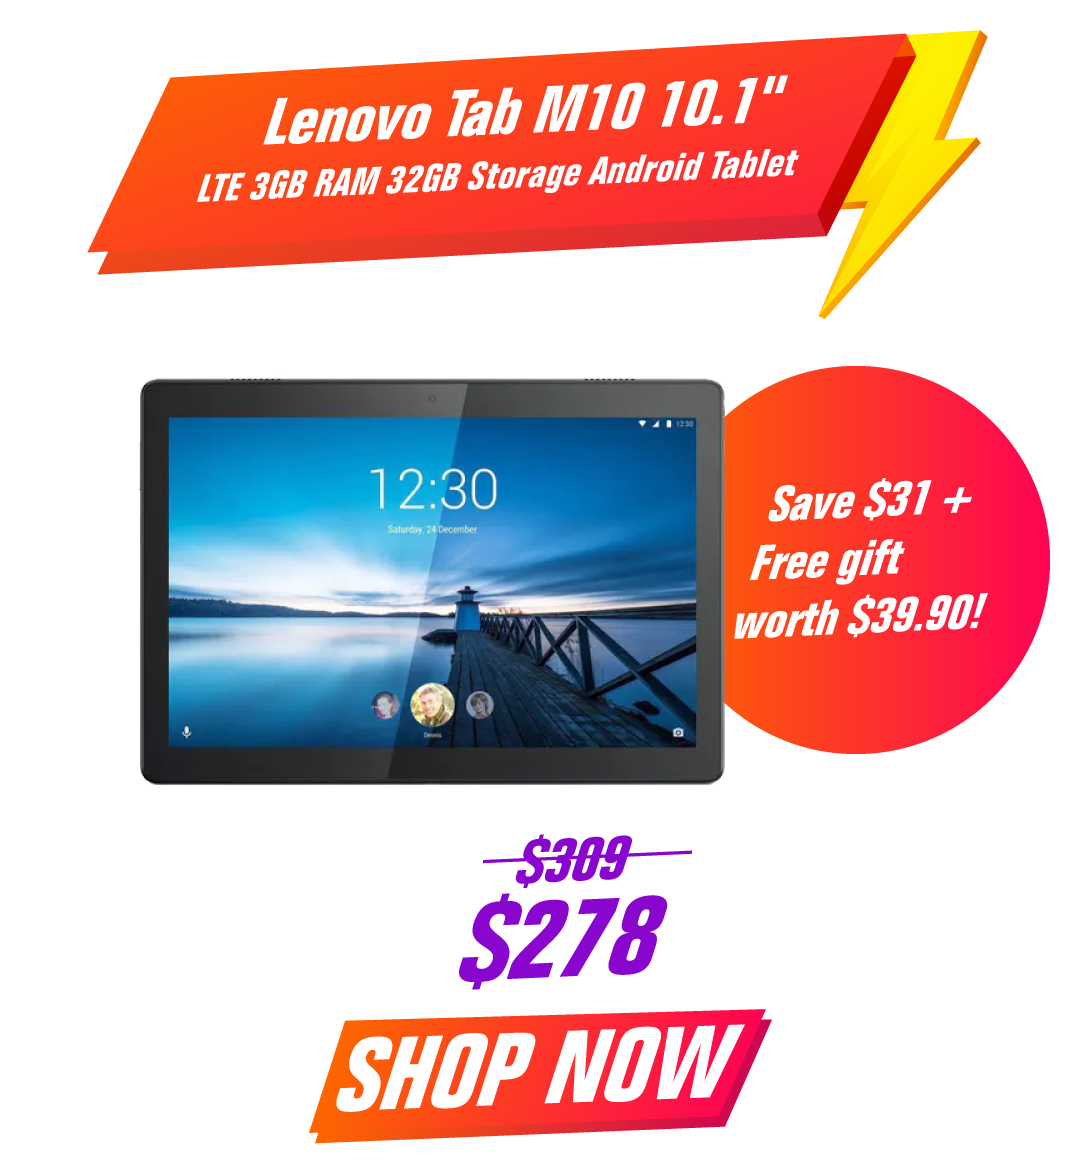 Lenovo Tab M10 10.1 LTE 3GB RAM 32GB Storage Android Tablet